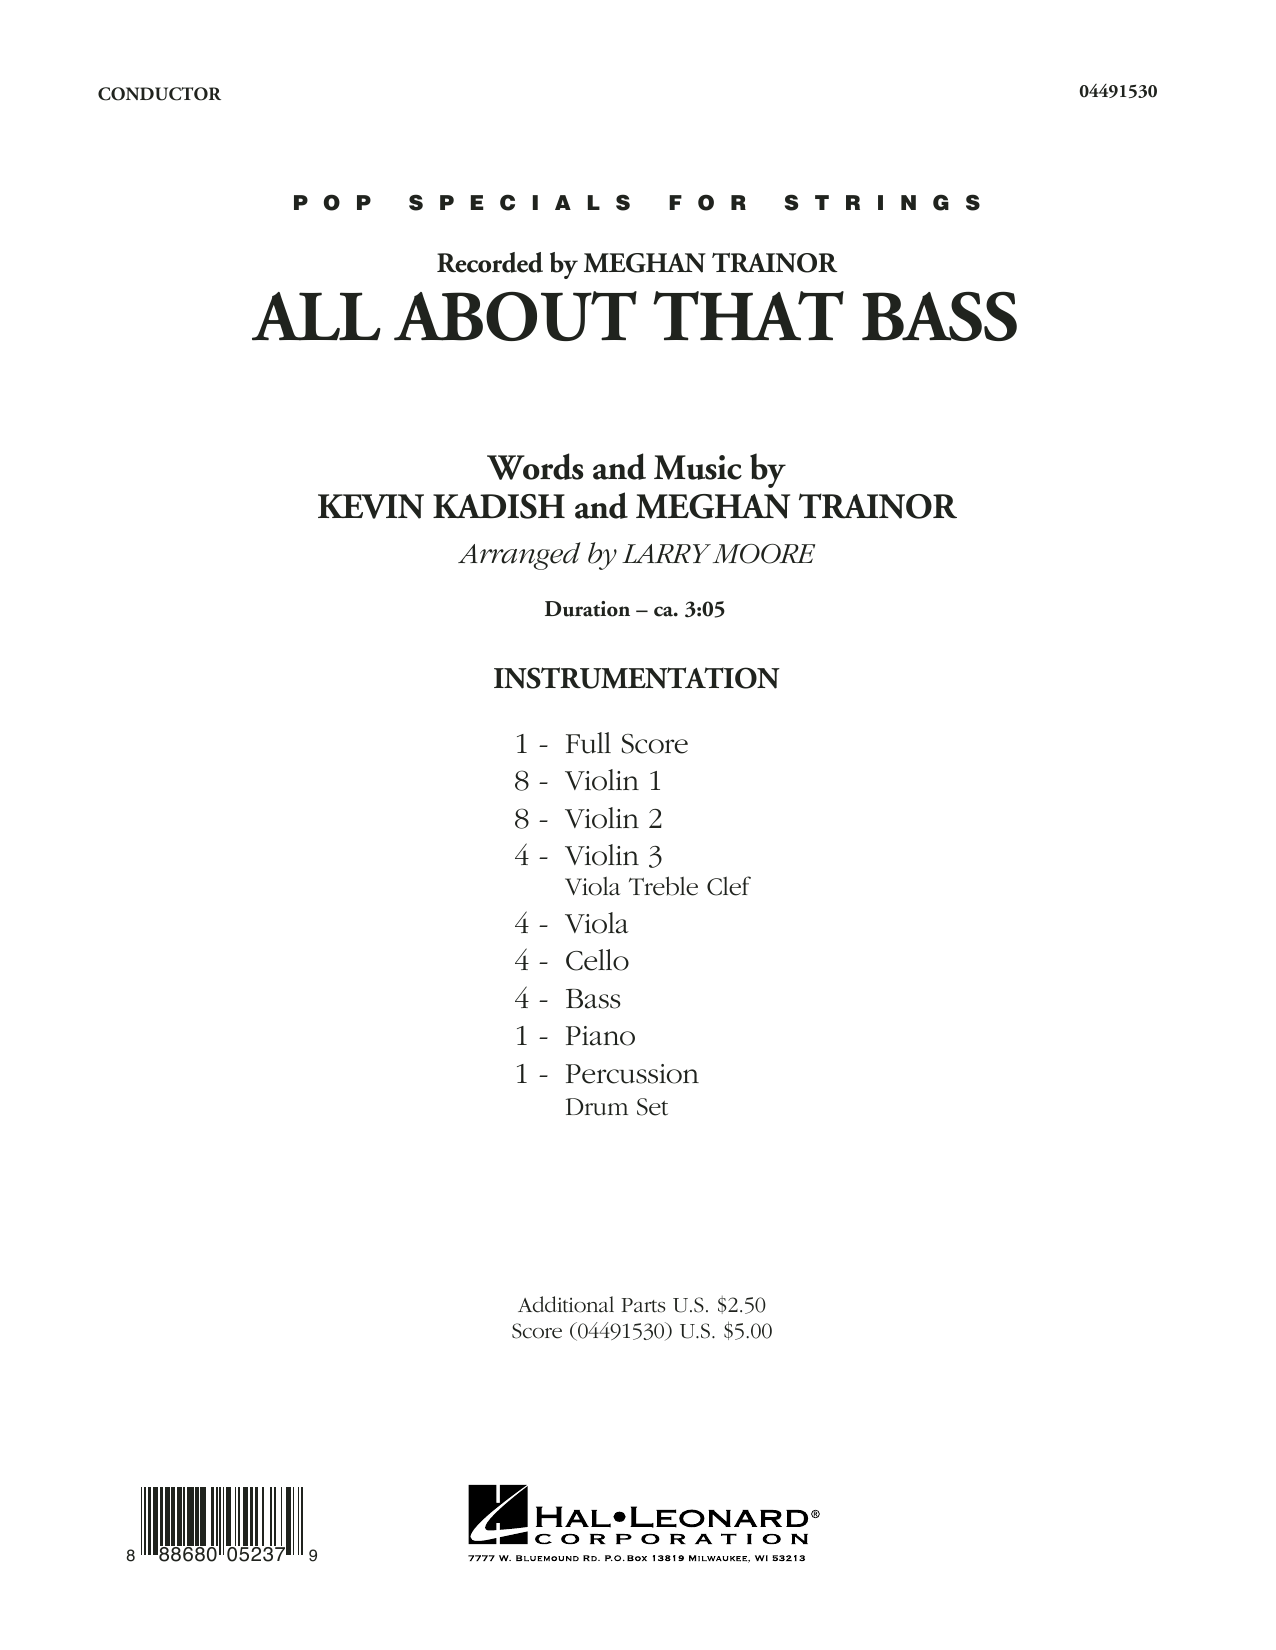 All About That Bass (COMPLETE) sheet music for orchestra by Larry Moore, Kevin Kadish and Meghan Trainor. Score Image Preview.